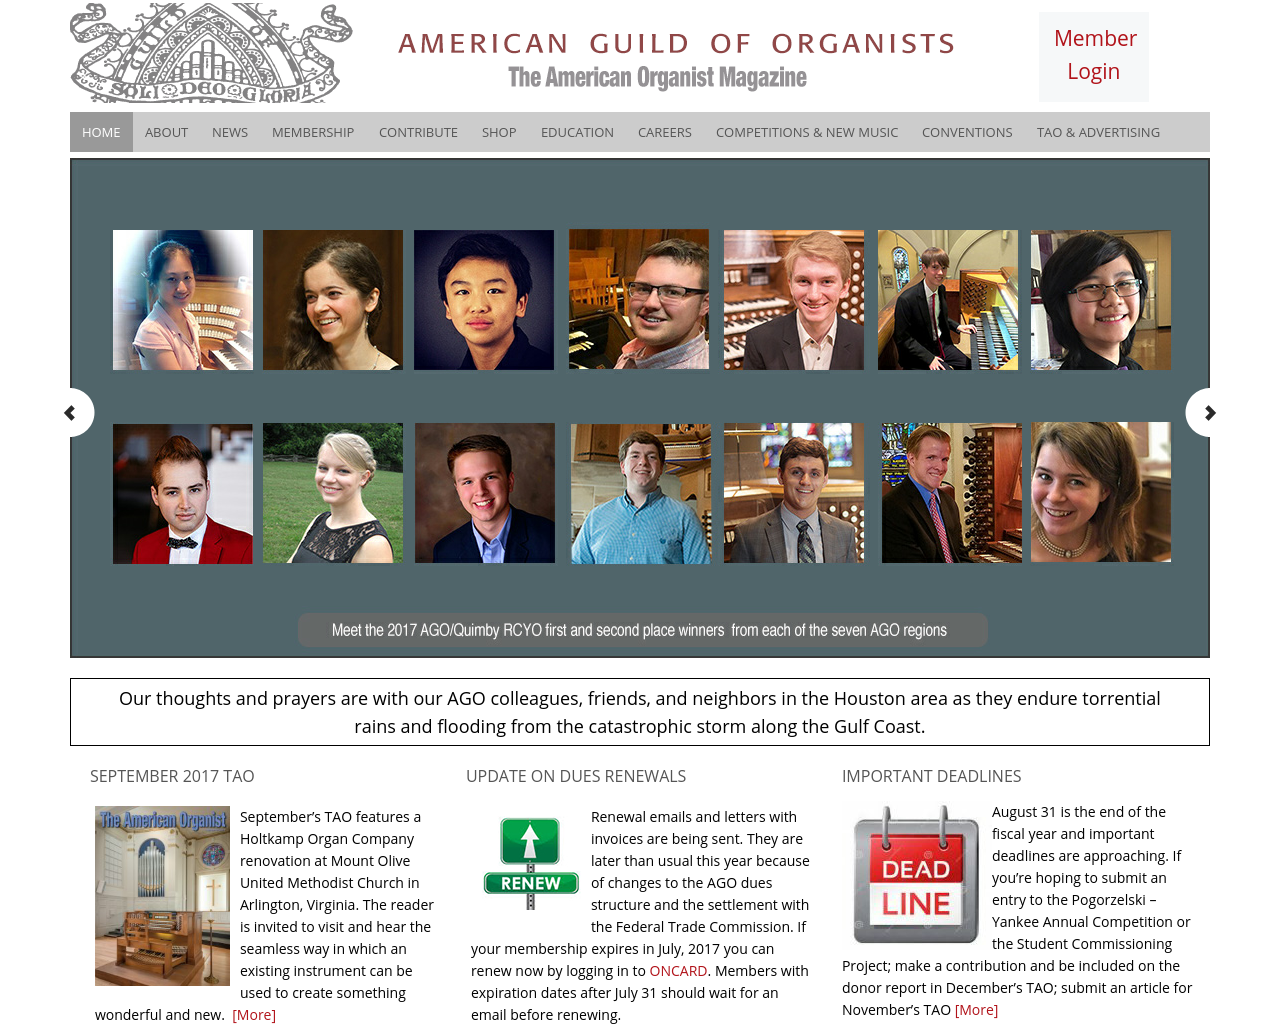 American-Guild-Of-Organists-Advertising-Reviews-Pricing